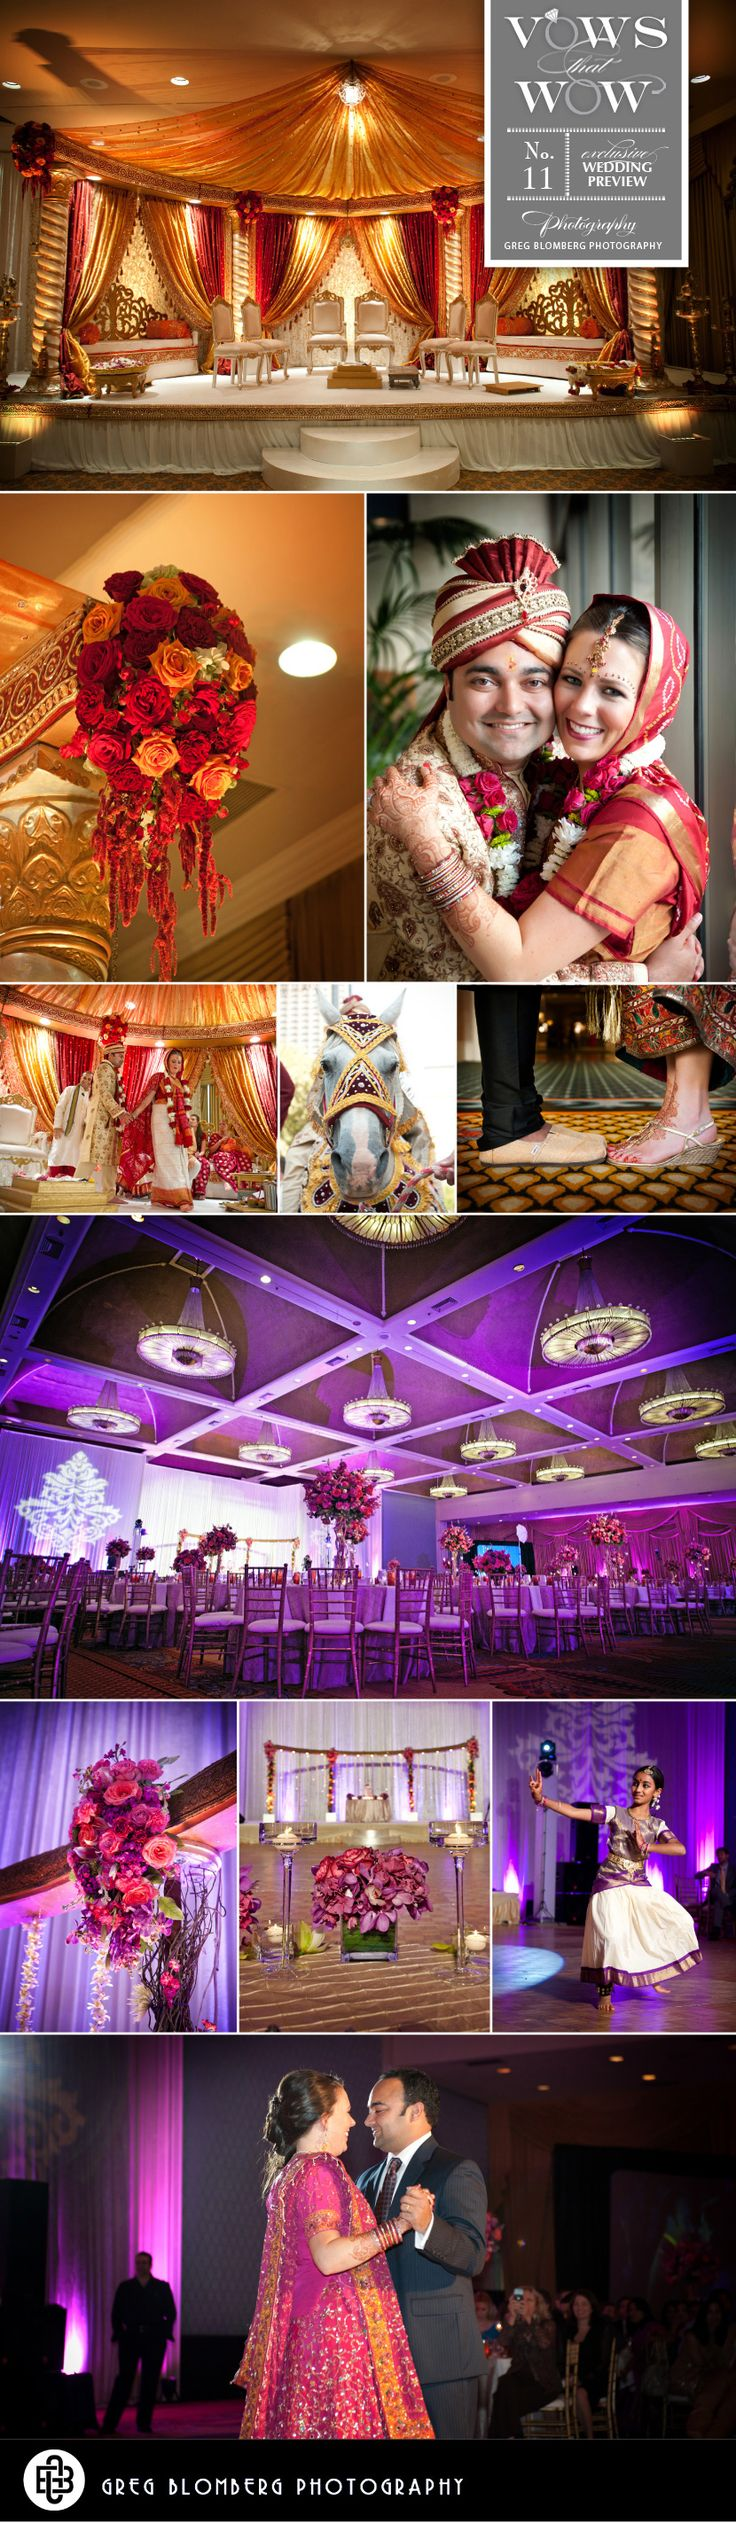 Colorful and elaborate Indian Wedding. Photos by Greg Blomberg Photography  #Indian #wedding #Dallas